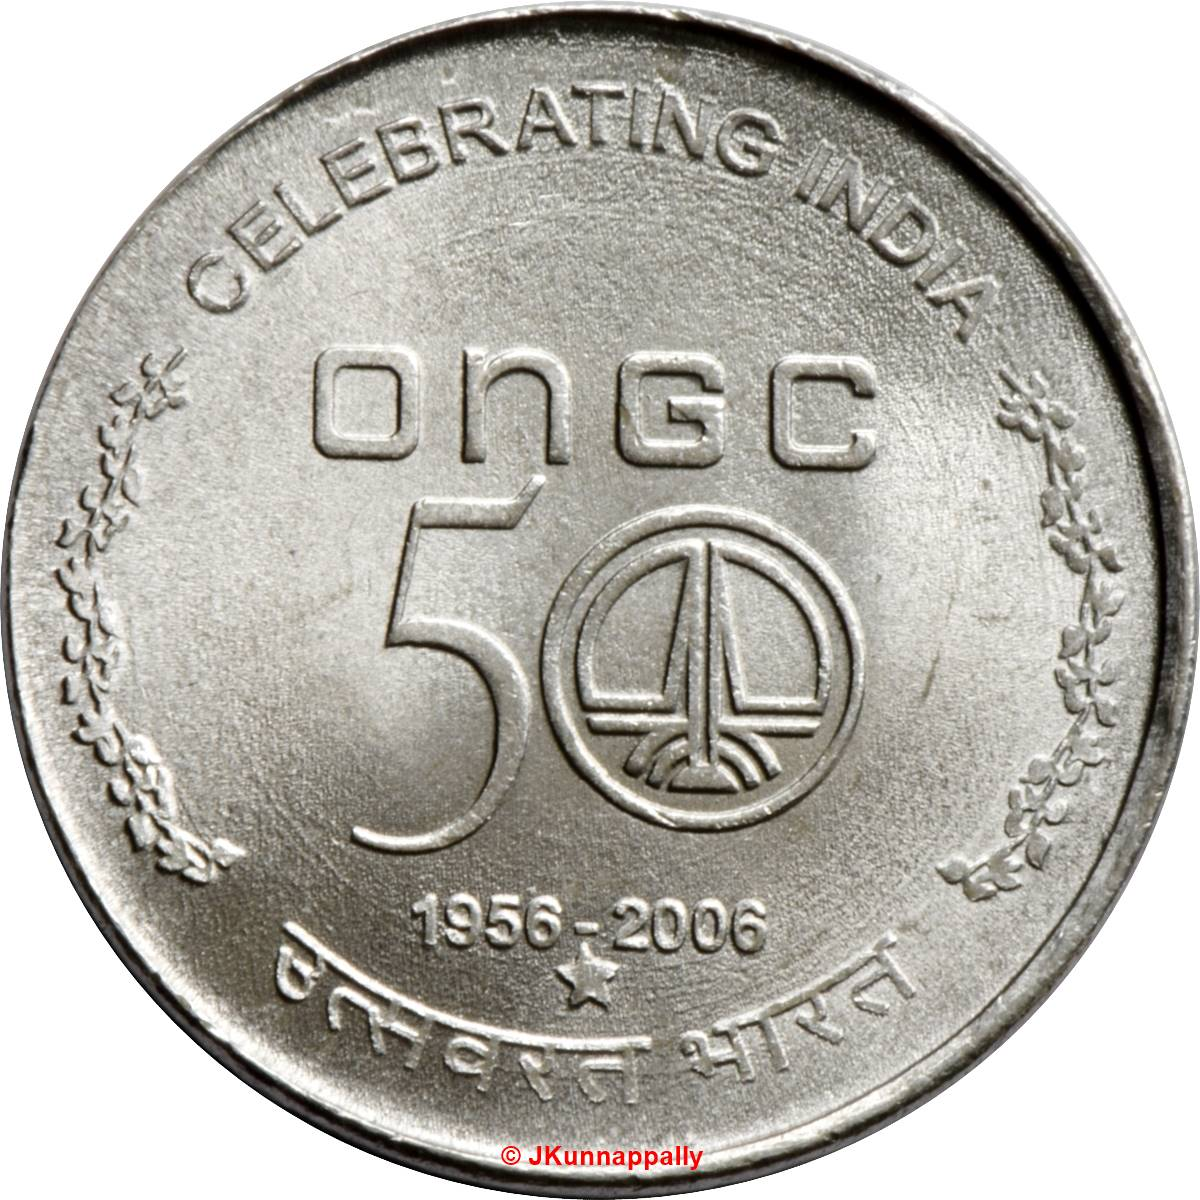 Coin clipart 5 rupee.  rupees ongc anniversary